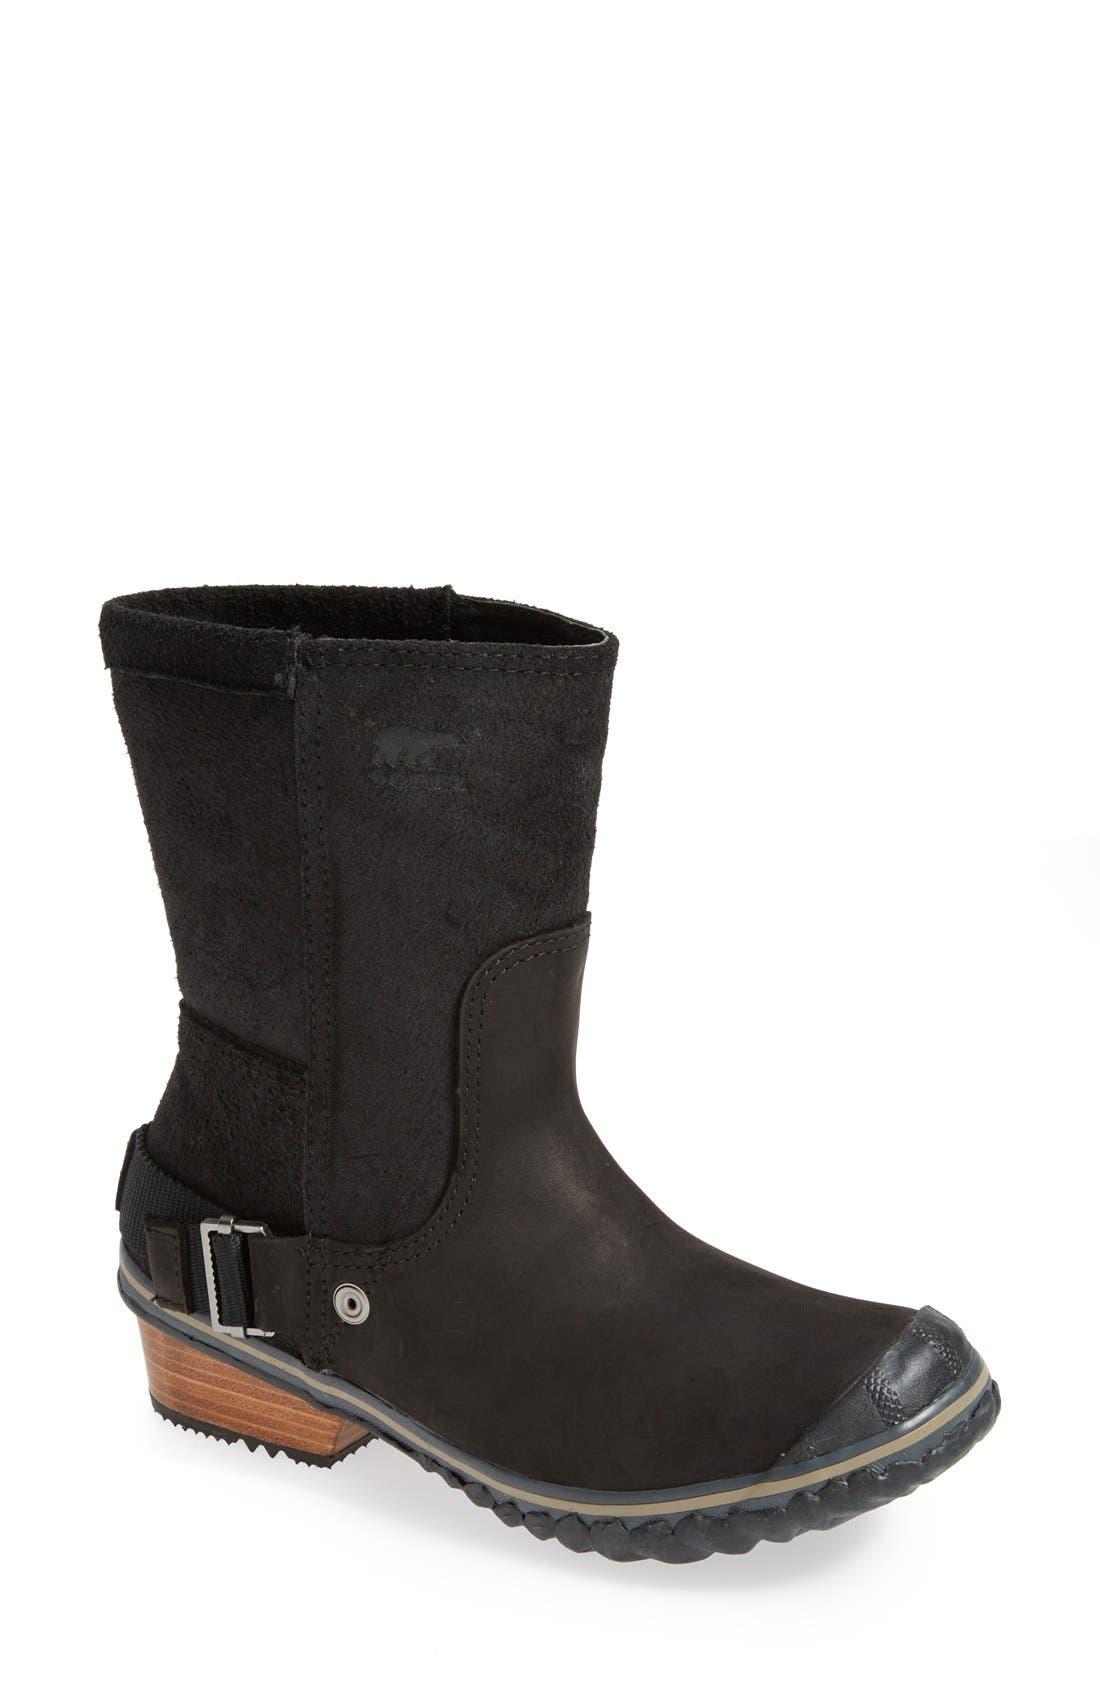 Main Image - SOREL 'Slimshortie™' Waterproof Boot (Women)